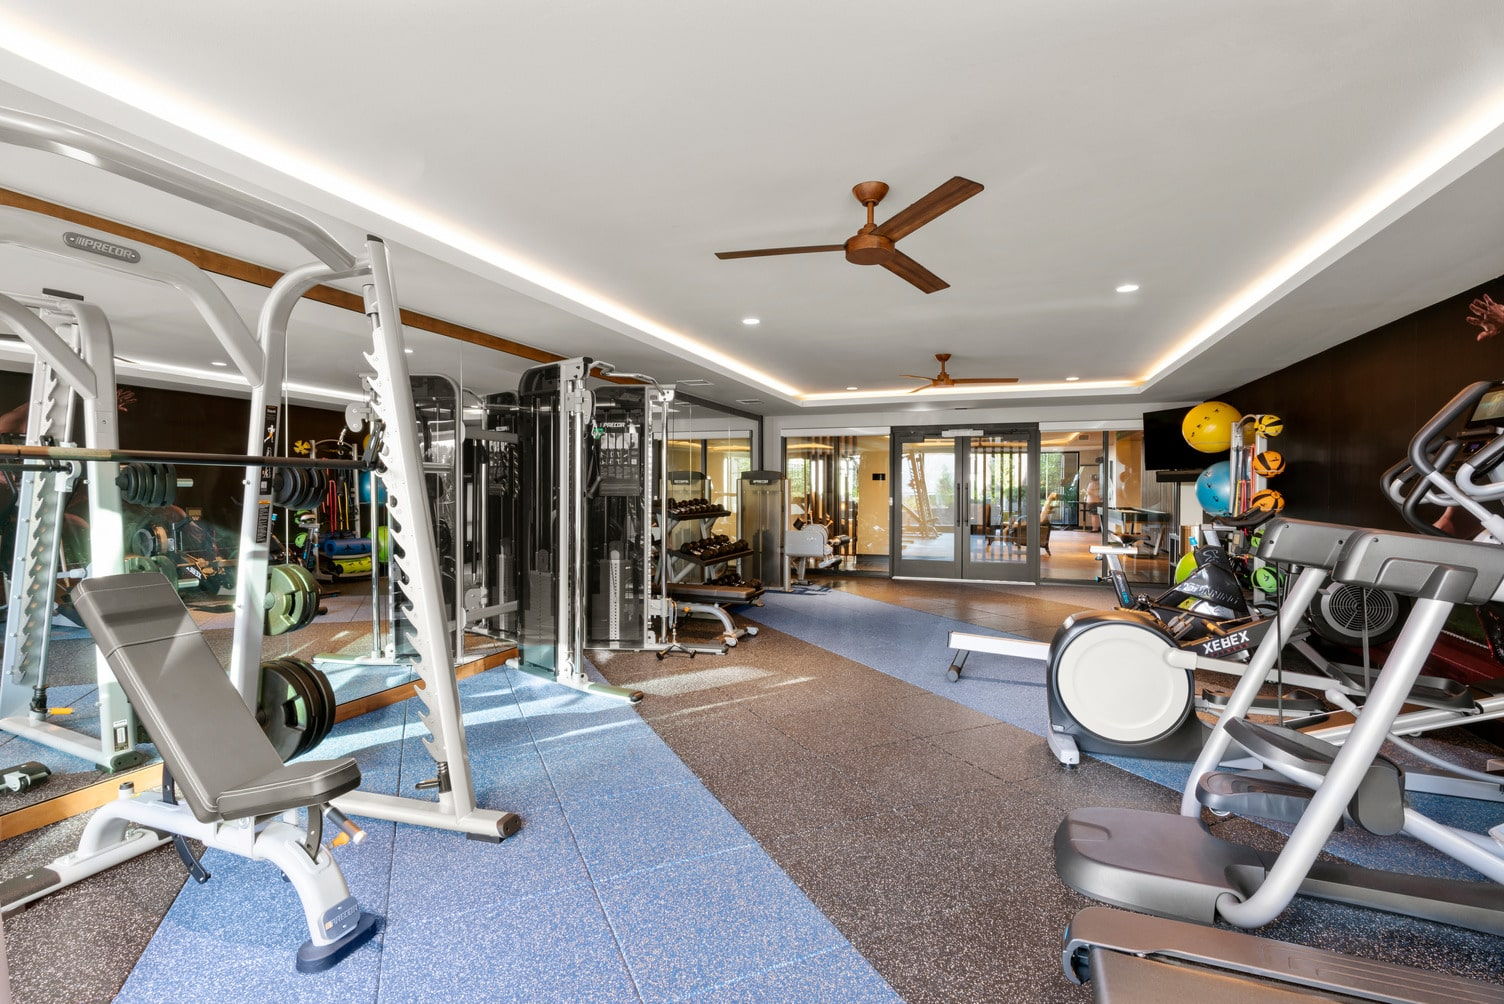 Fitness center with treadmills, ellipticals, various weight machines, free weights, yoga and medicine balls, a mounted TV, and a large floor-to-ceiling wall mirror.